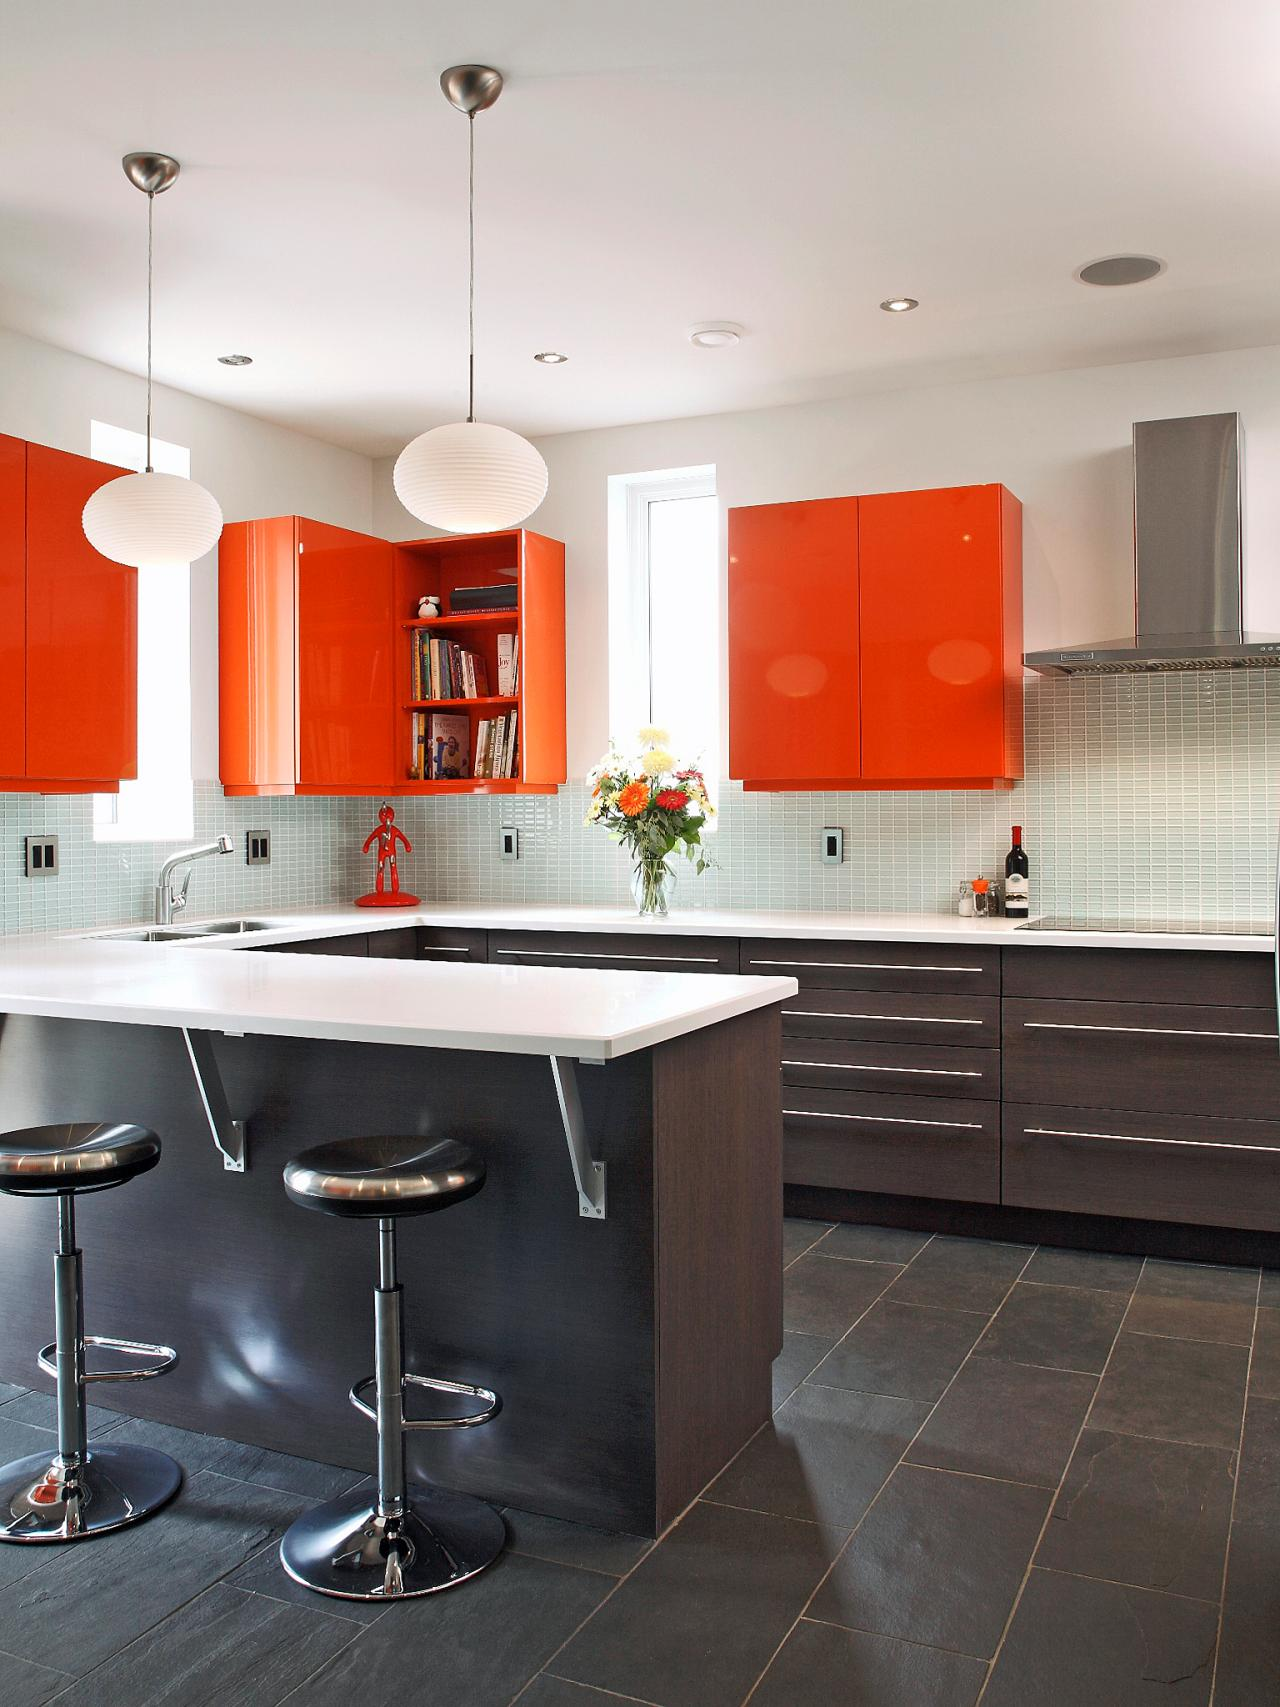 Trendy Paint Colors for Your Kitchen3